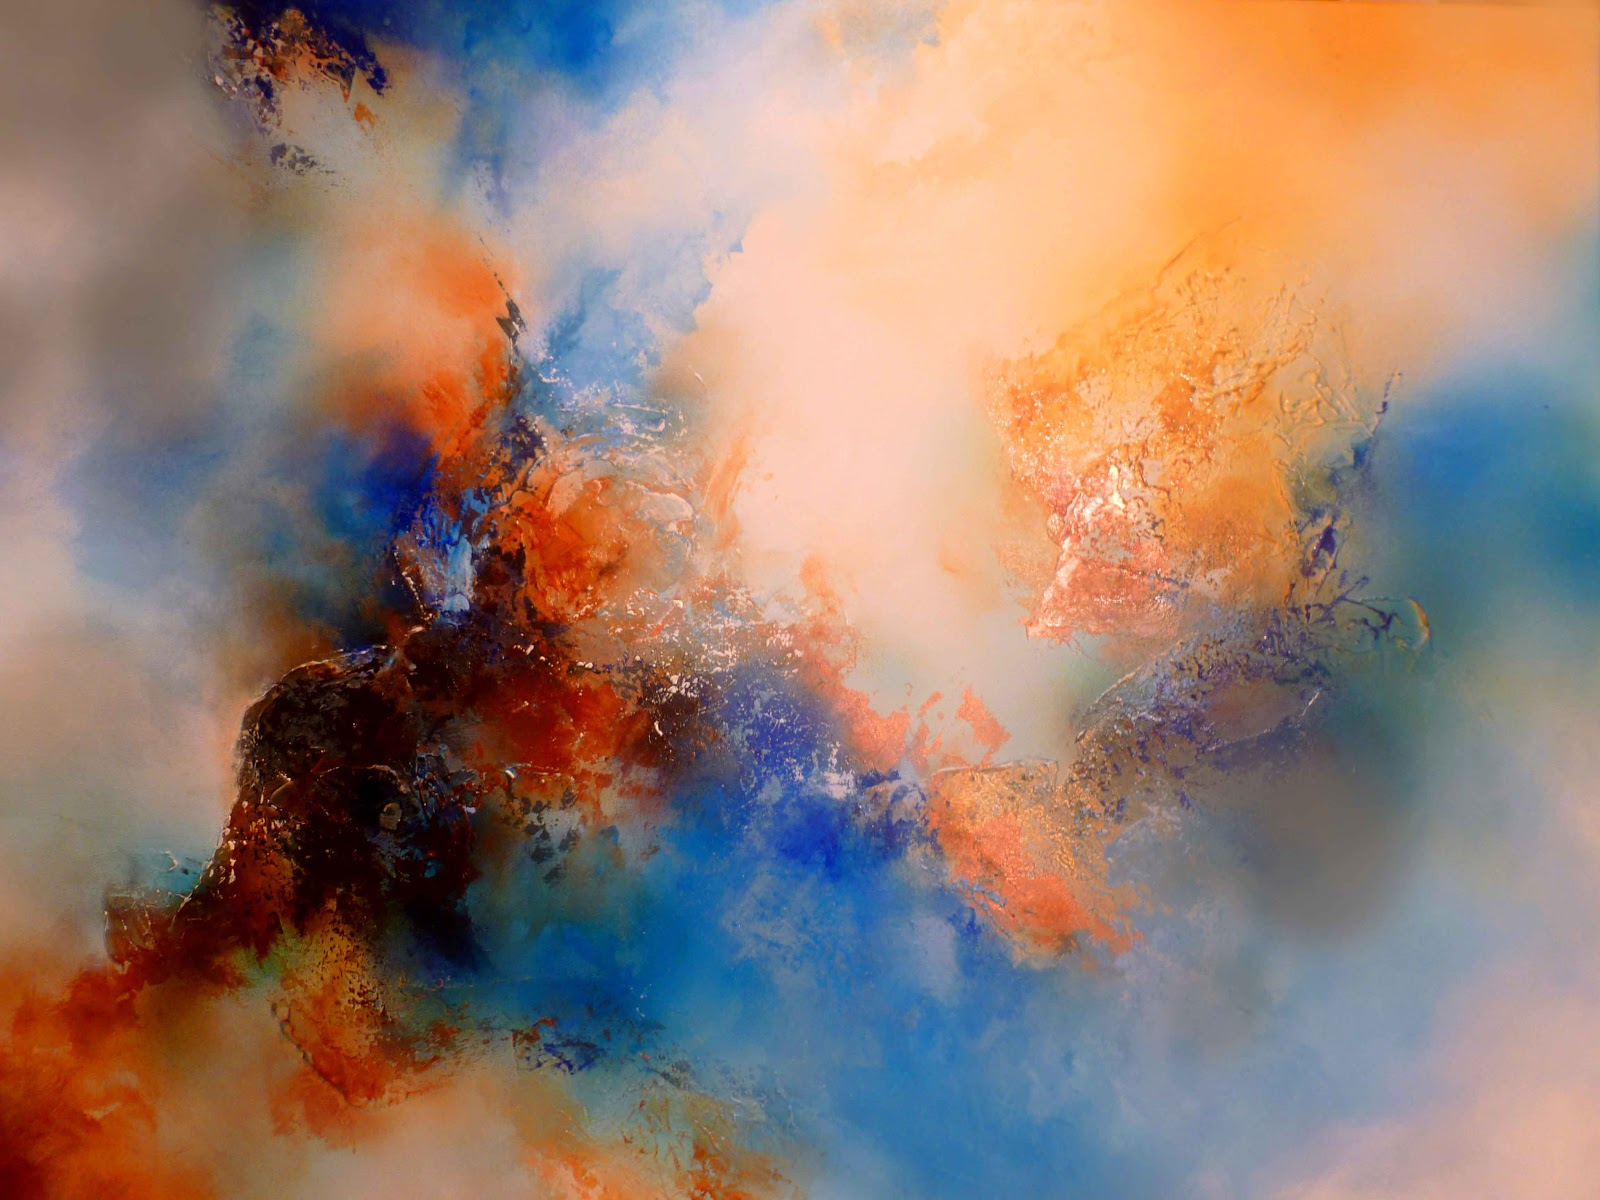 Abstract paintings by artist simon kenny abstract for Abstract artwork for sale